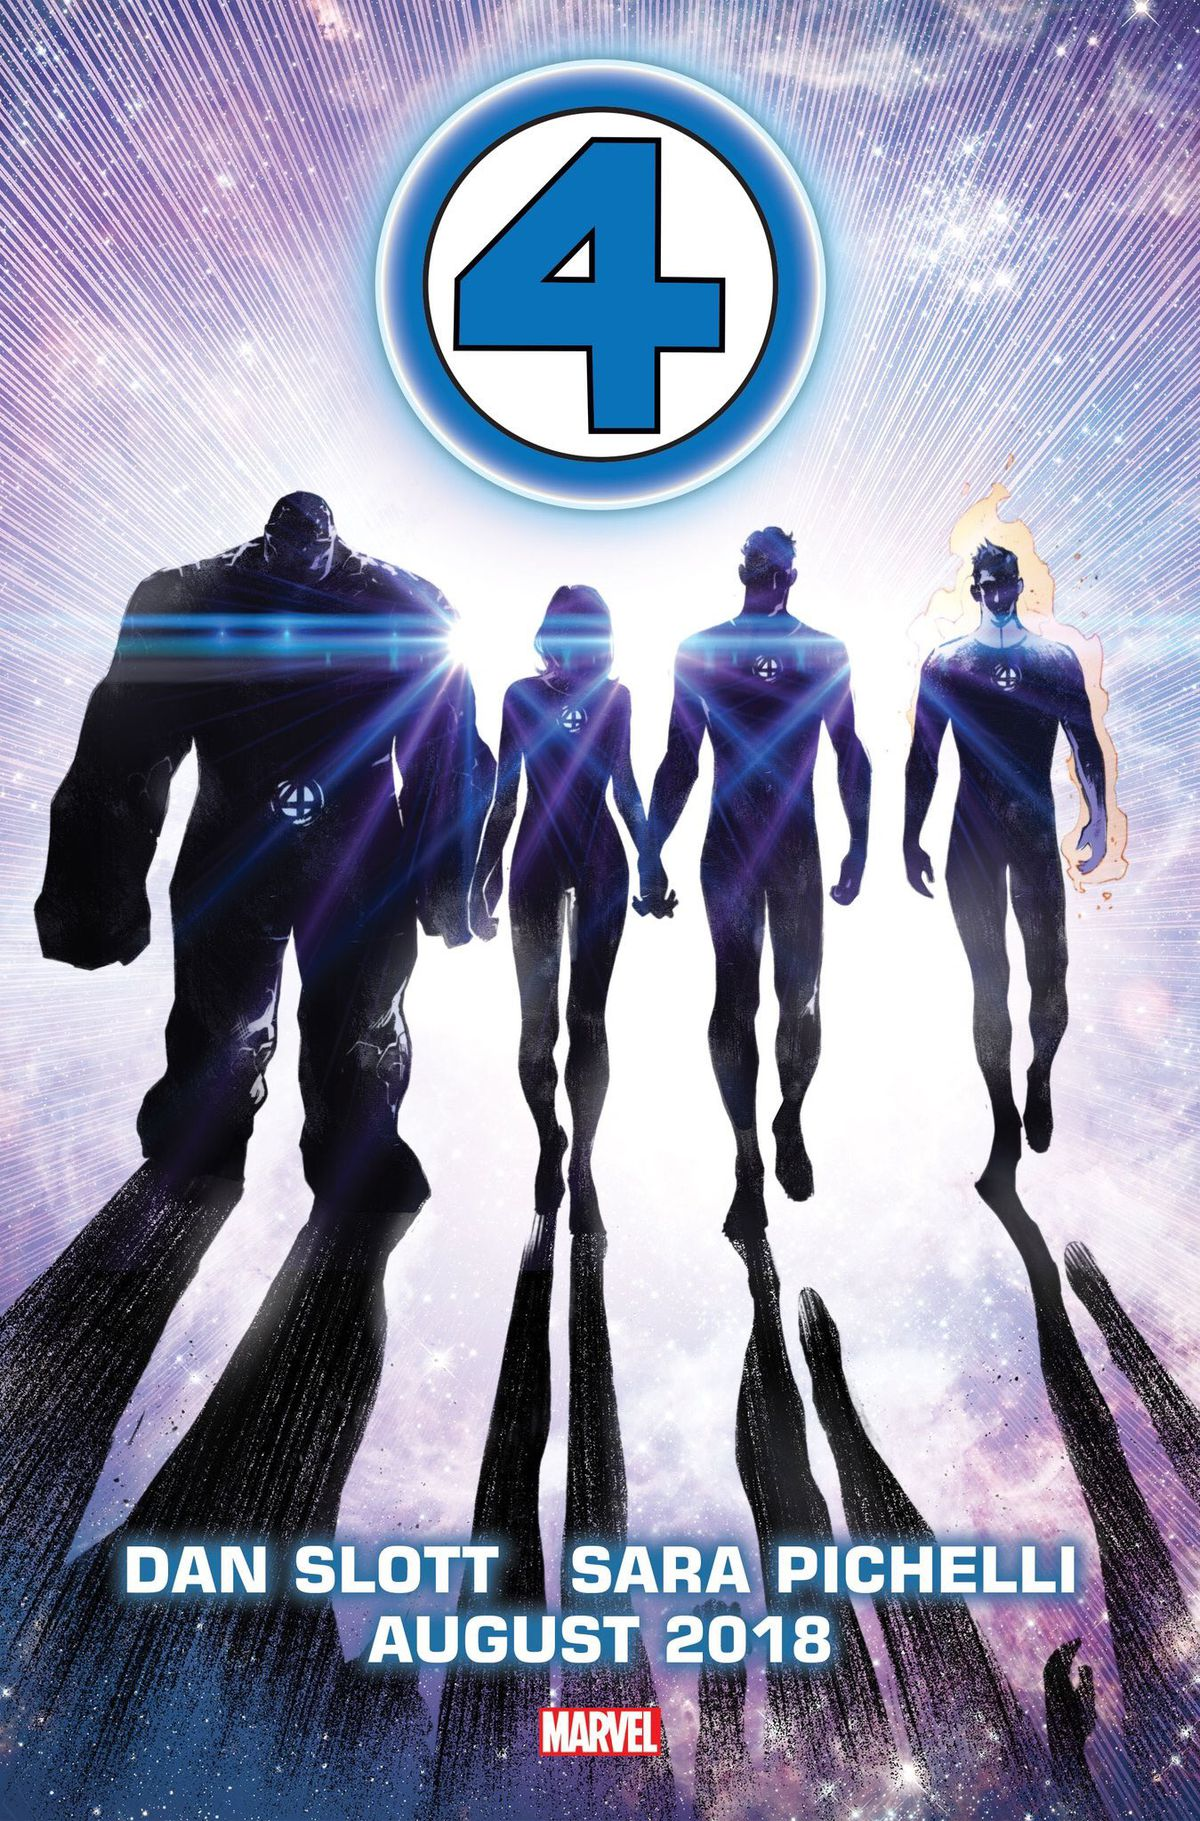 The Fantastic Four are returning to Marvel Comics this